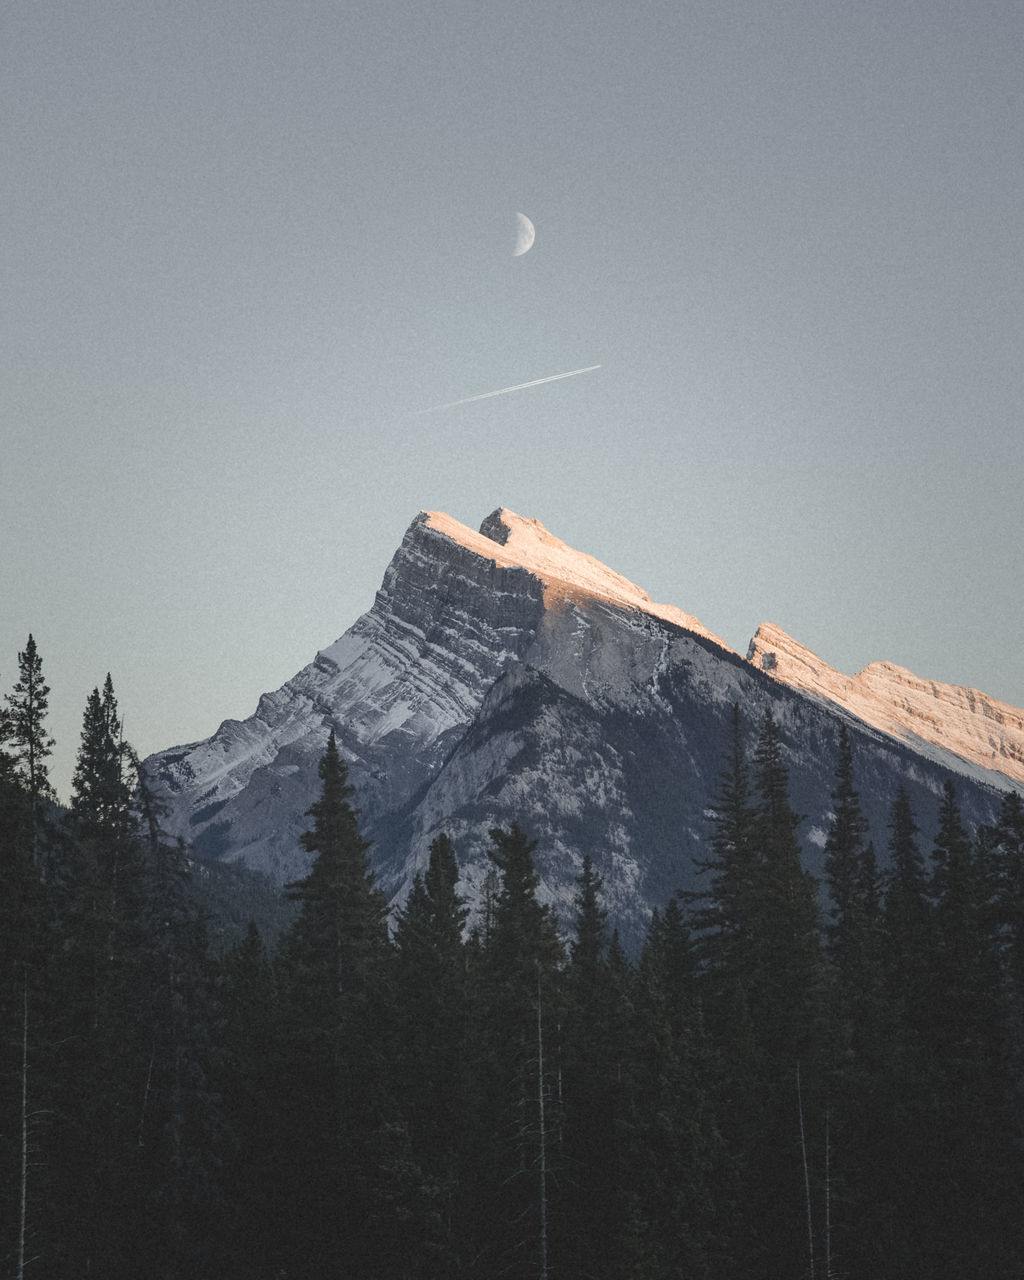 "First Light over the Heart of the Canadian Rockies. EyeEm Best Shots EyeEm Nature Lover If Trees Could Speak astronomy beauty in Nature canada canon canonphotography Clear sky first light Moon mountain mountain range Nature outdoors scenics snow ""If Trees Could Speak"""